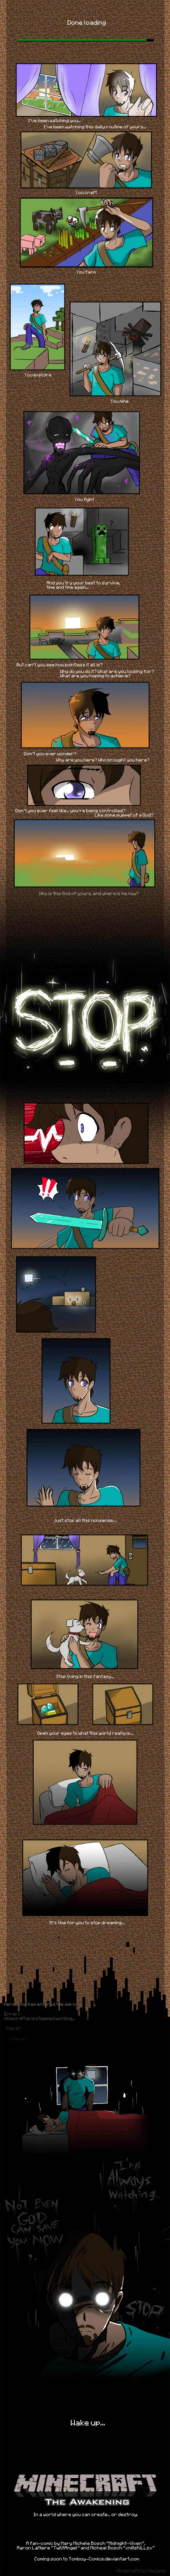 Minecraft Comic - The awekening